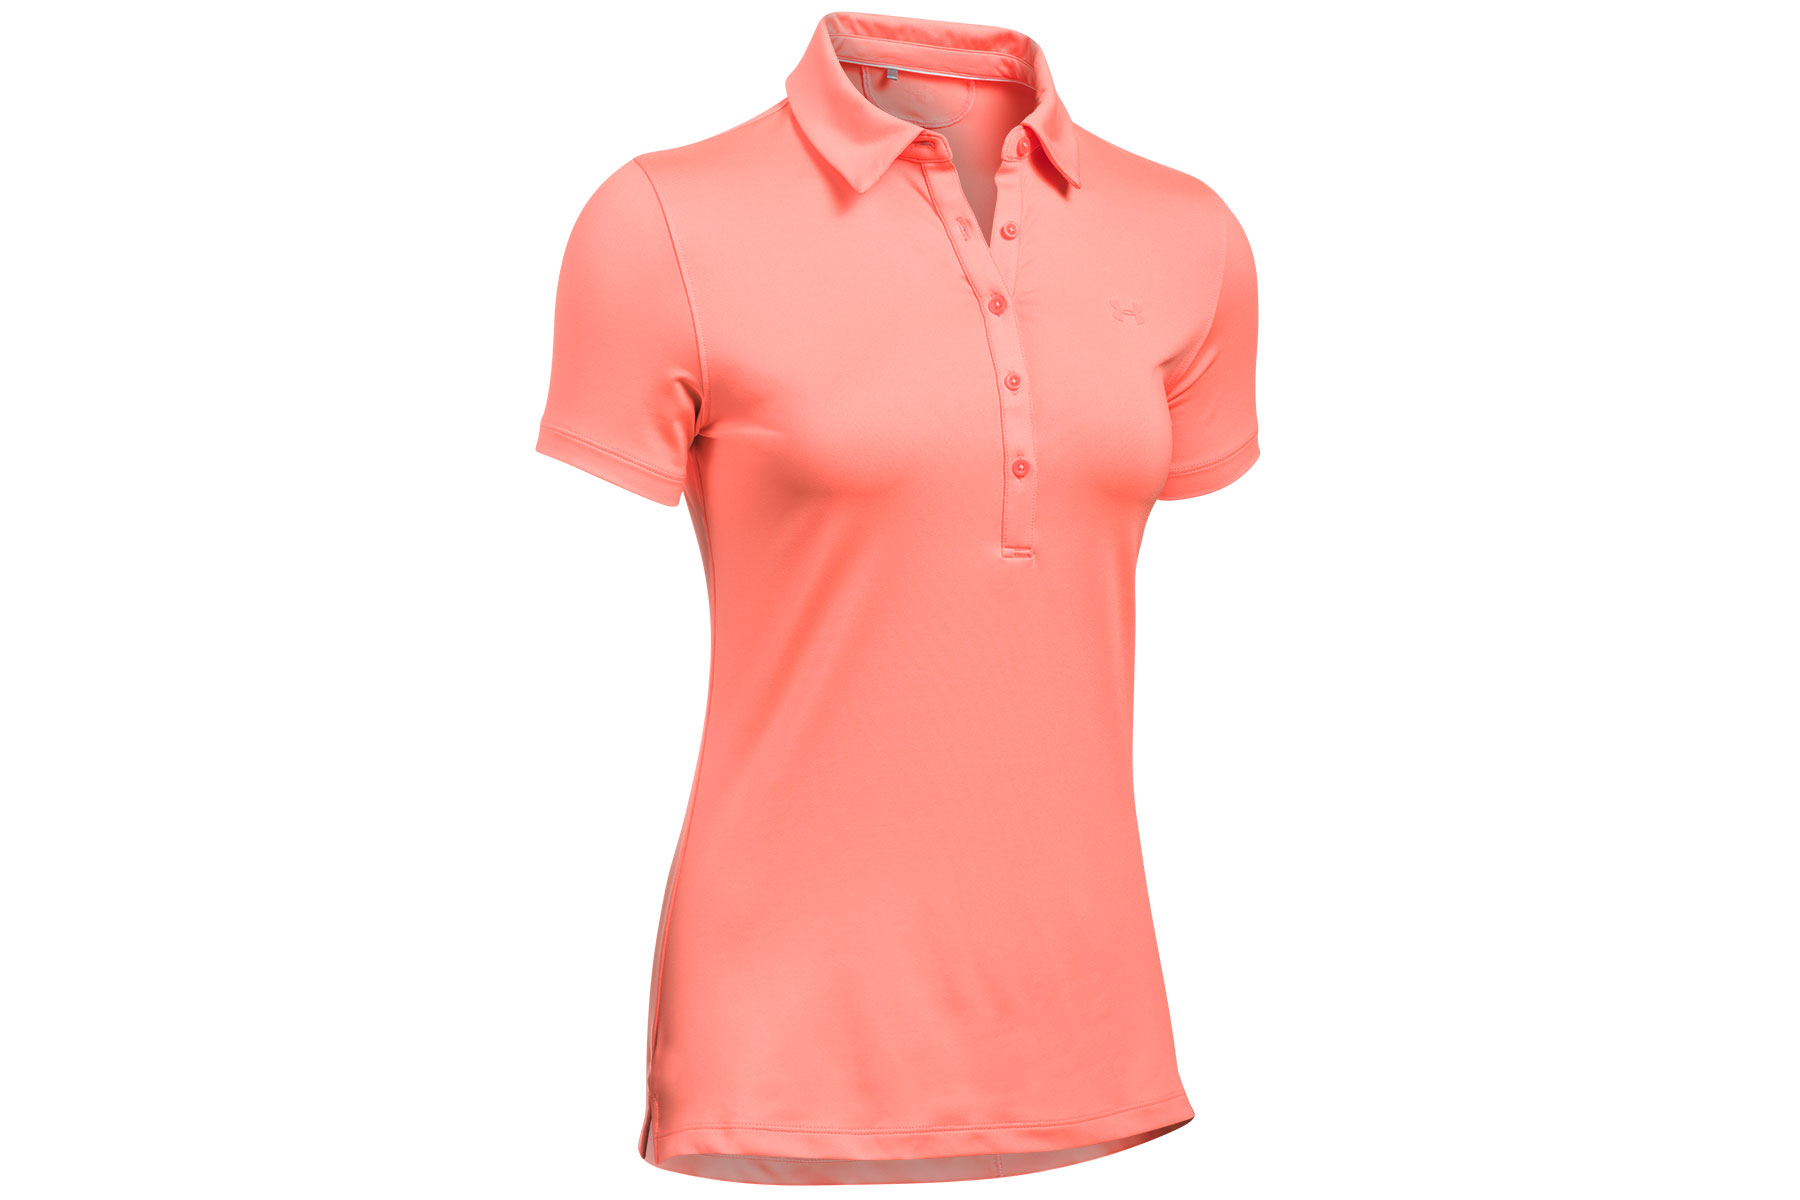 armour garment company Amazoncom: under armour clothing under armour, inc is an american company that manufactures footwear under armour men's performance polo by under armour.